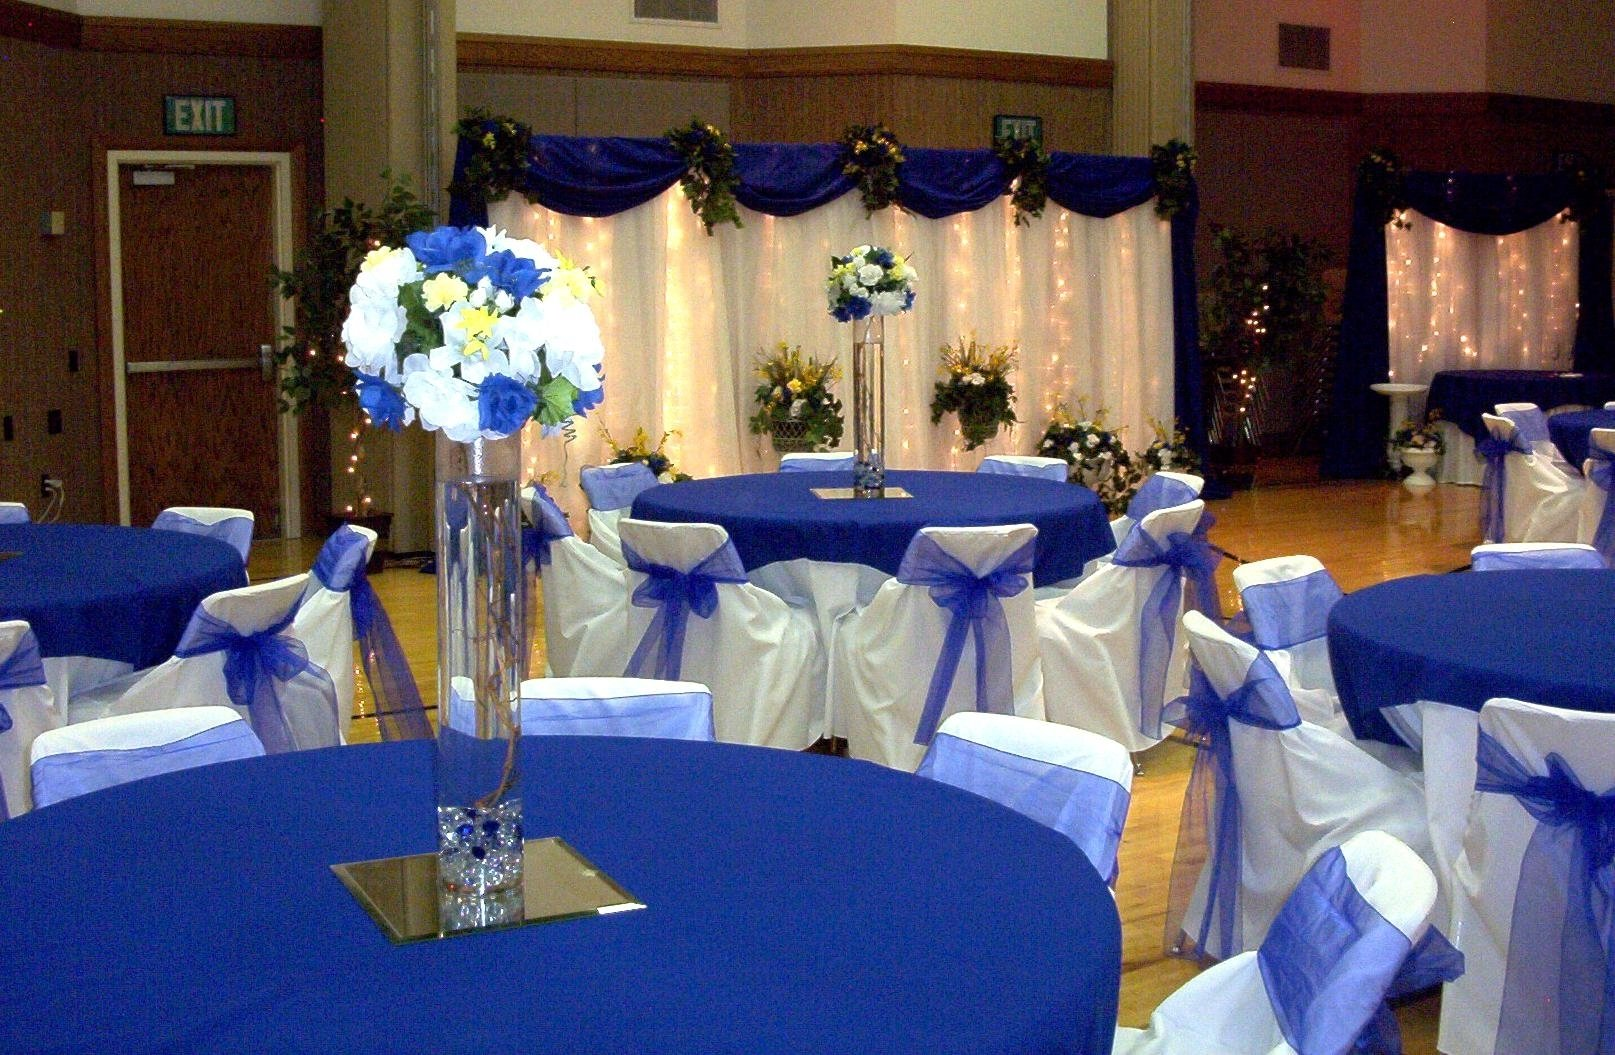 10 Lovable Royal Blue And Silver Wedding Ideas best royal blue wedding decorations with image 2 of 19